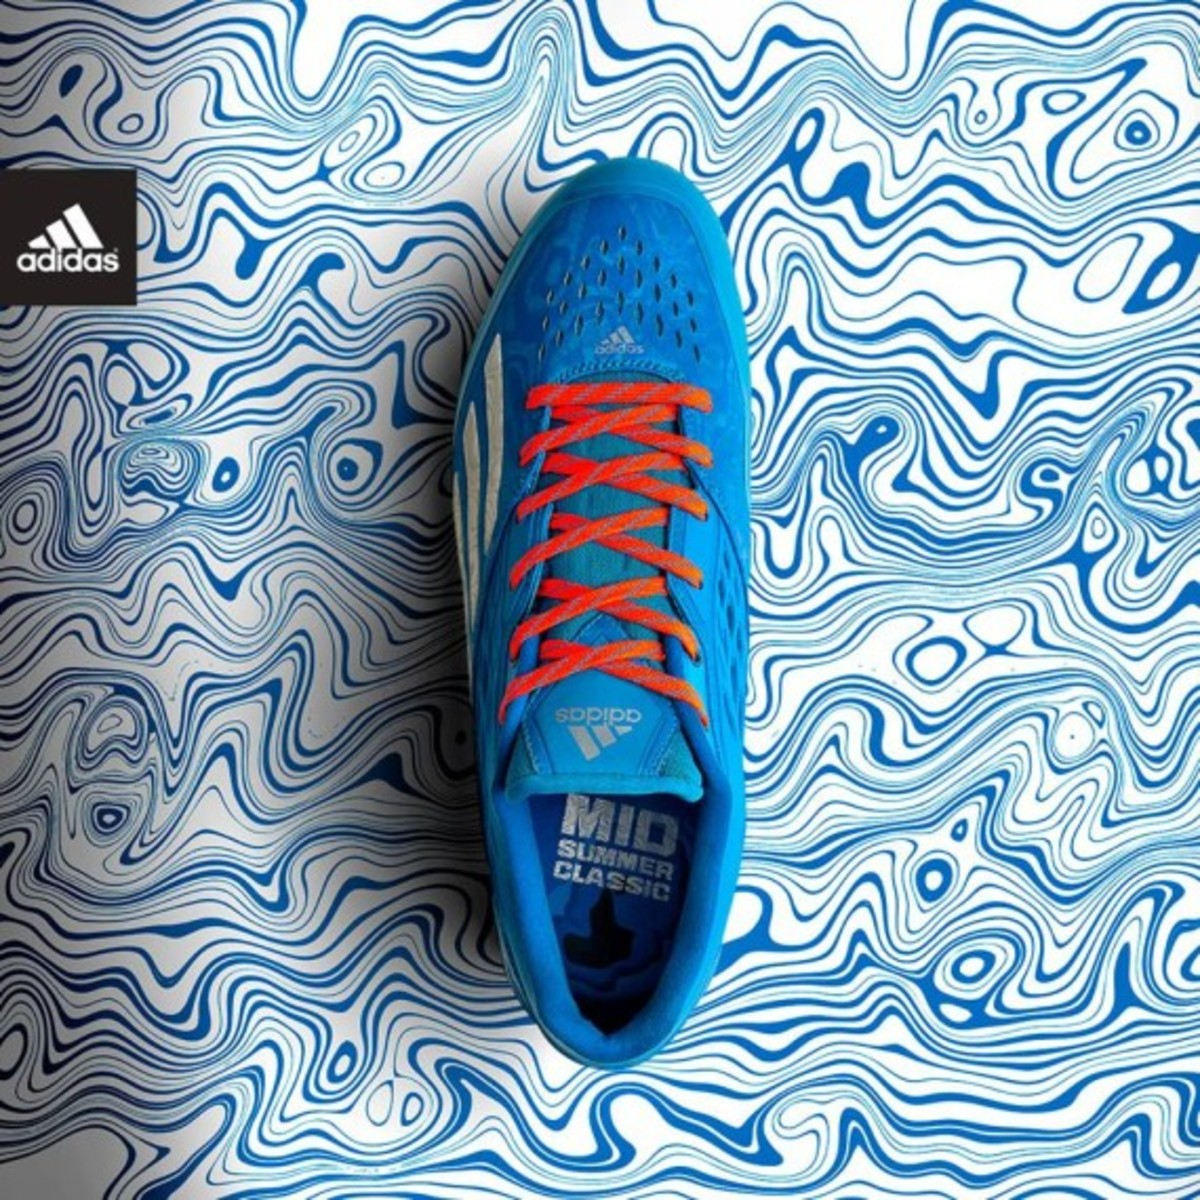 adidas-unveils-mlb-all-star-energy-boost-cleat-02